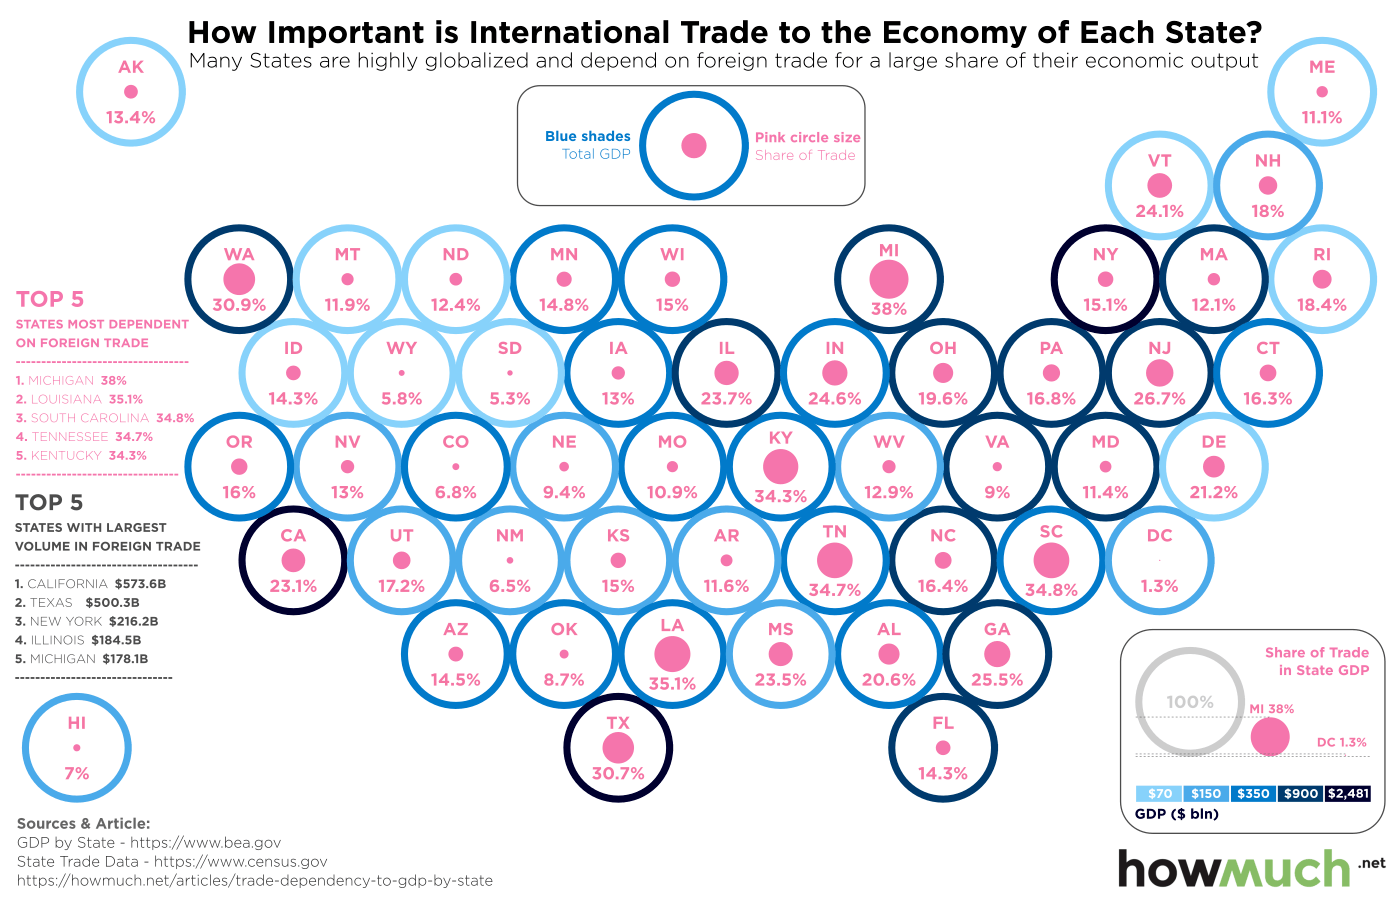 Visualizing U.S. States' Dependence on International Trade